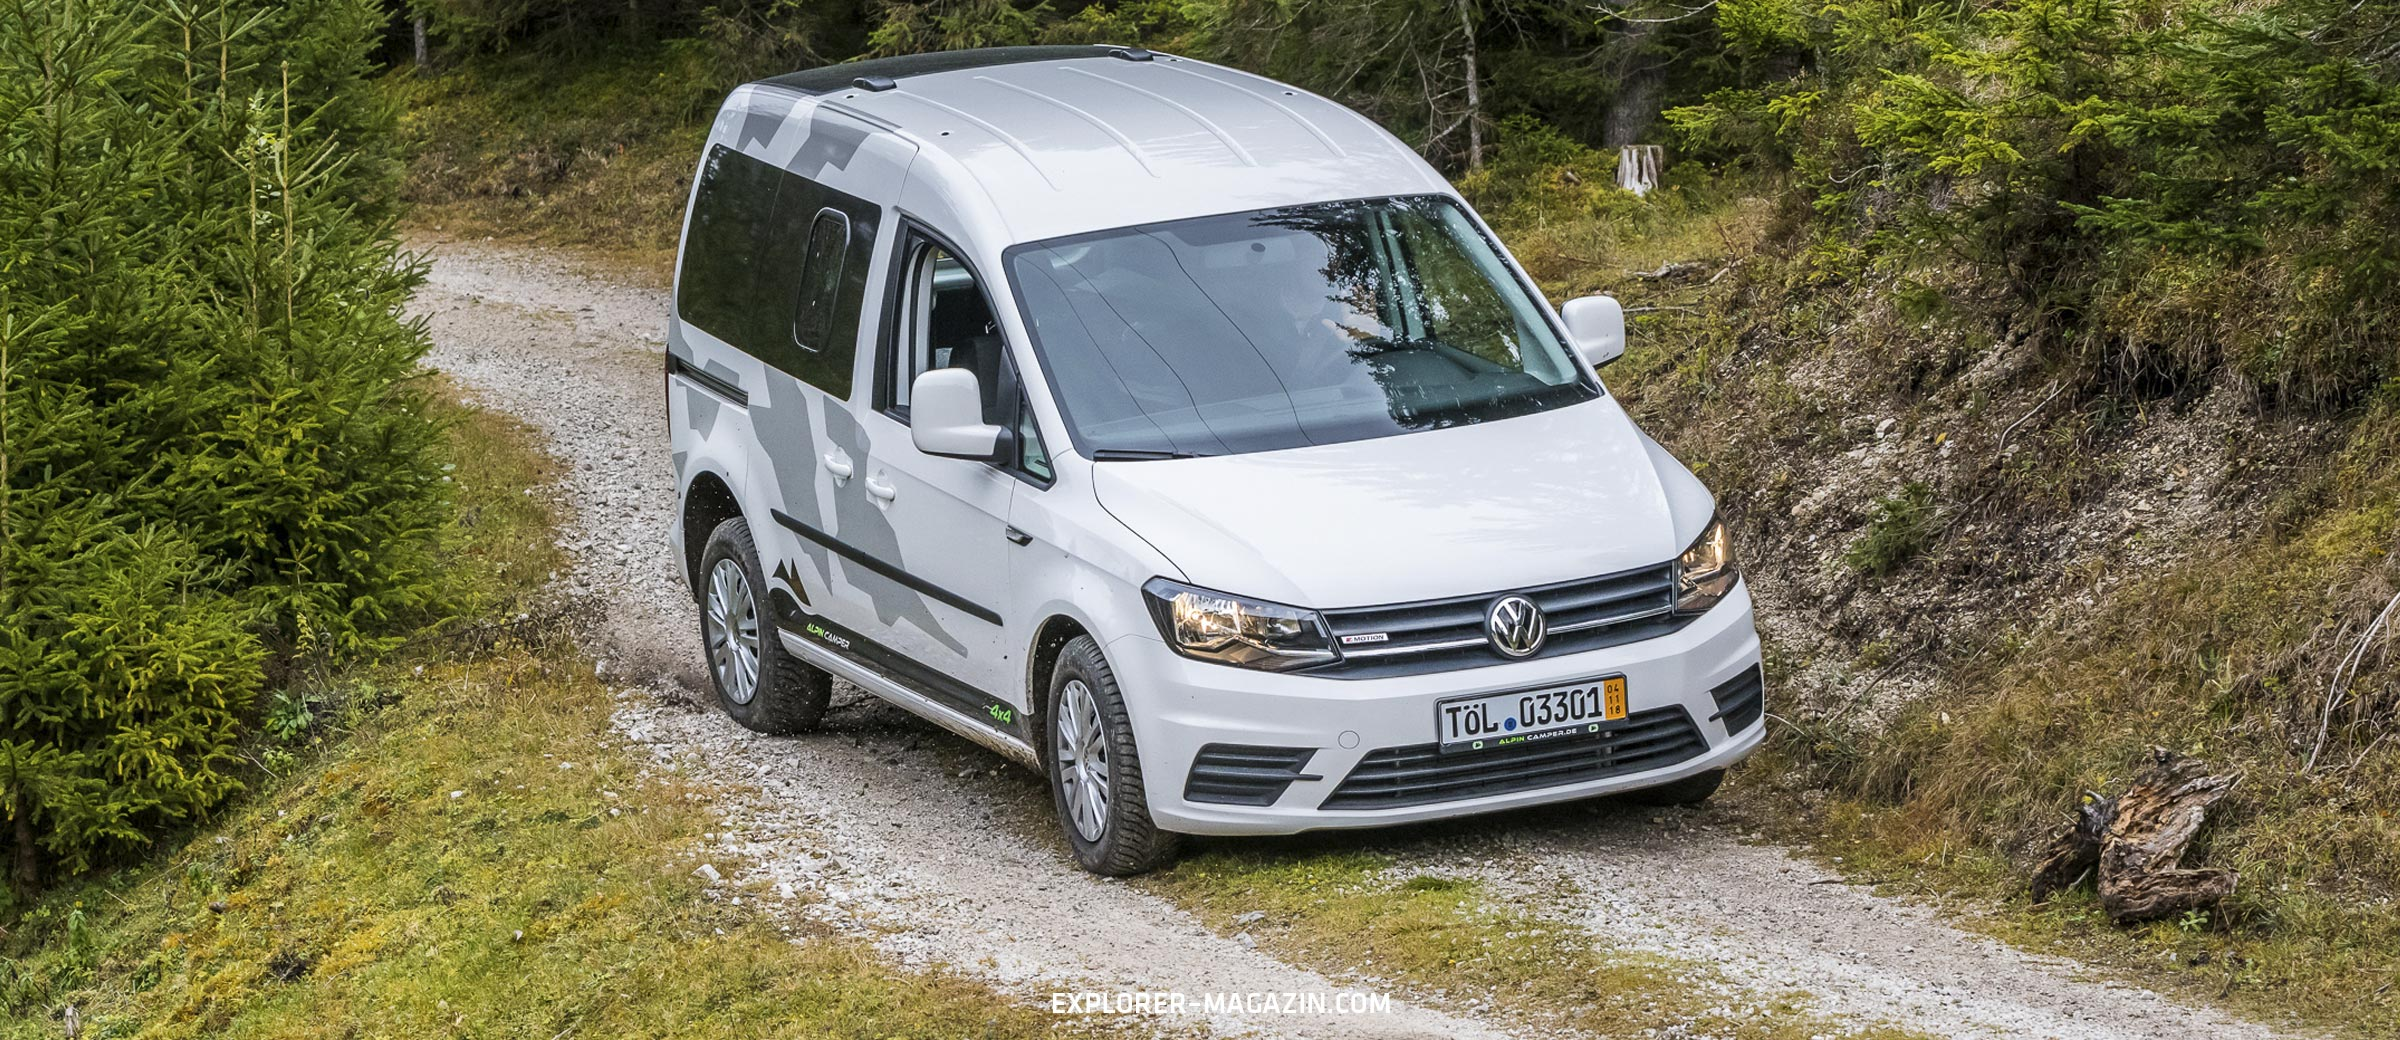 VW Caddy 4motion - Alpincamper